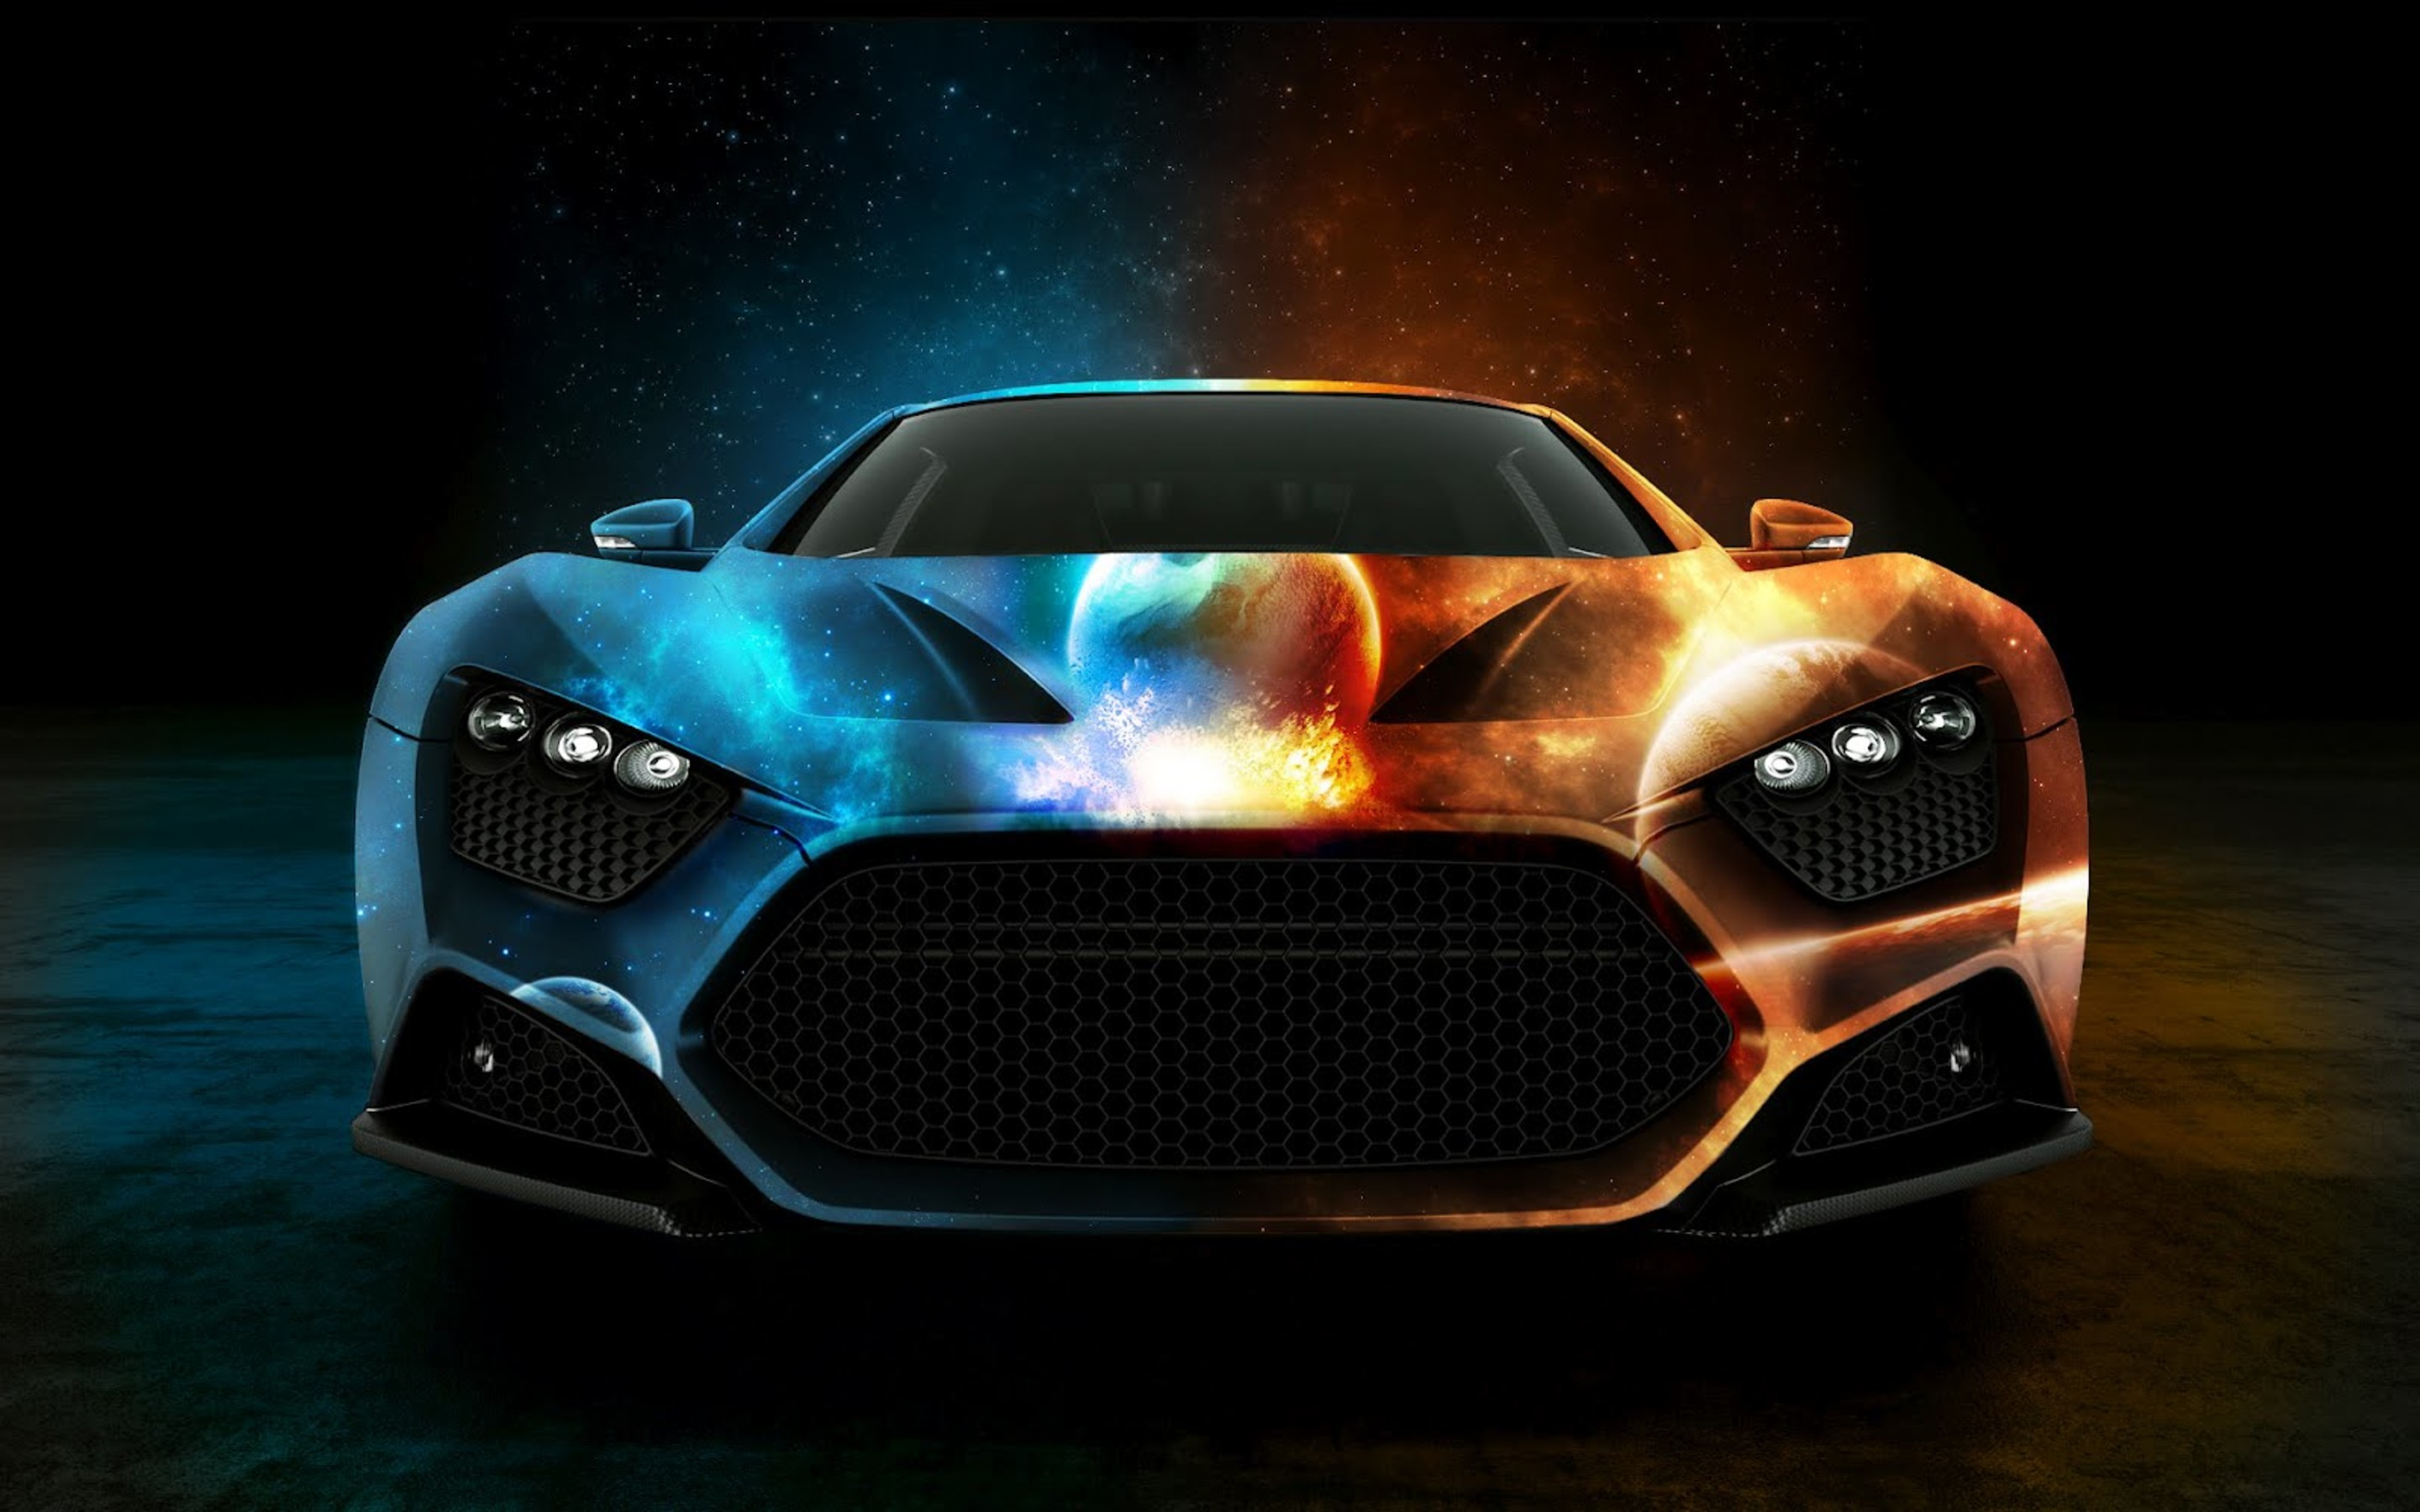 2880x1800 Image detail for -Hi Res Car Wallpapers Awesome Car Wallpaper for Desktop –  Free HD .